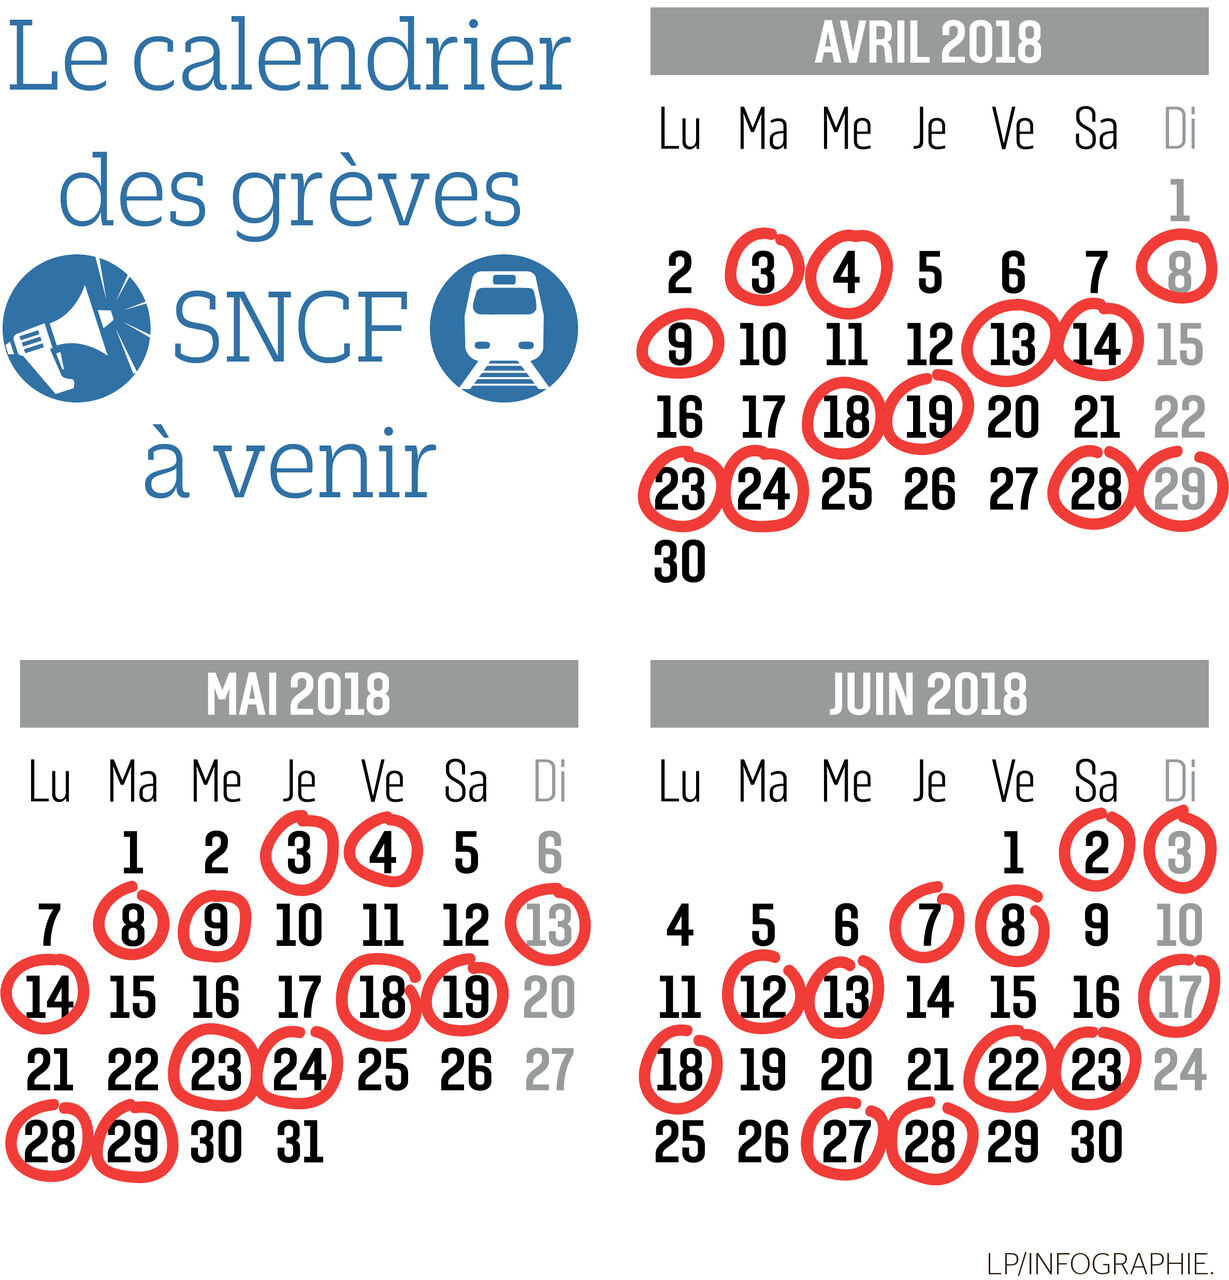 Calendrier Greves Air France.Greves Grosses Turbulences Sociales Apres Paques Le Parisien